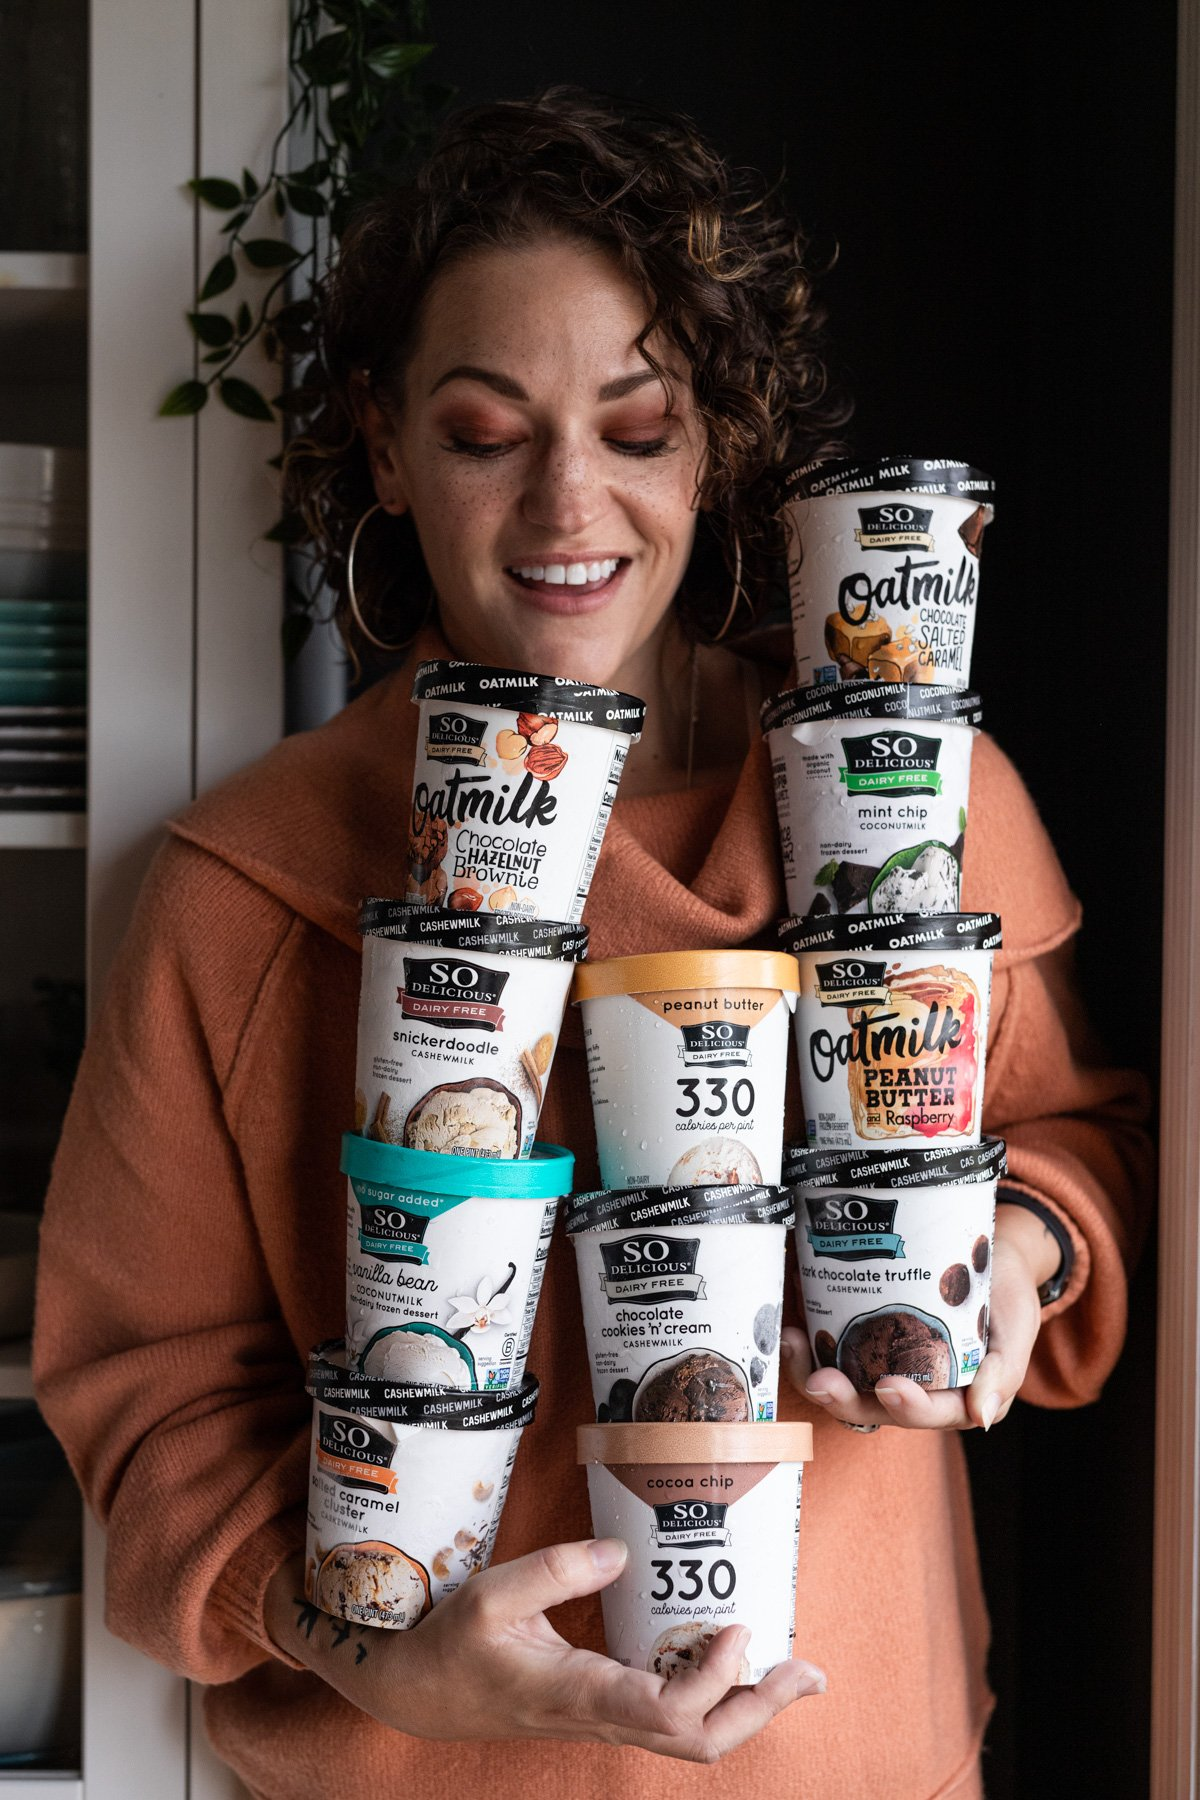 karly gomez holding 11 pints of so delicious dairy free frozen dessert